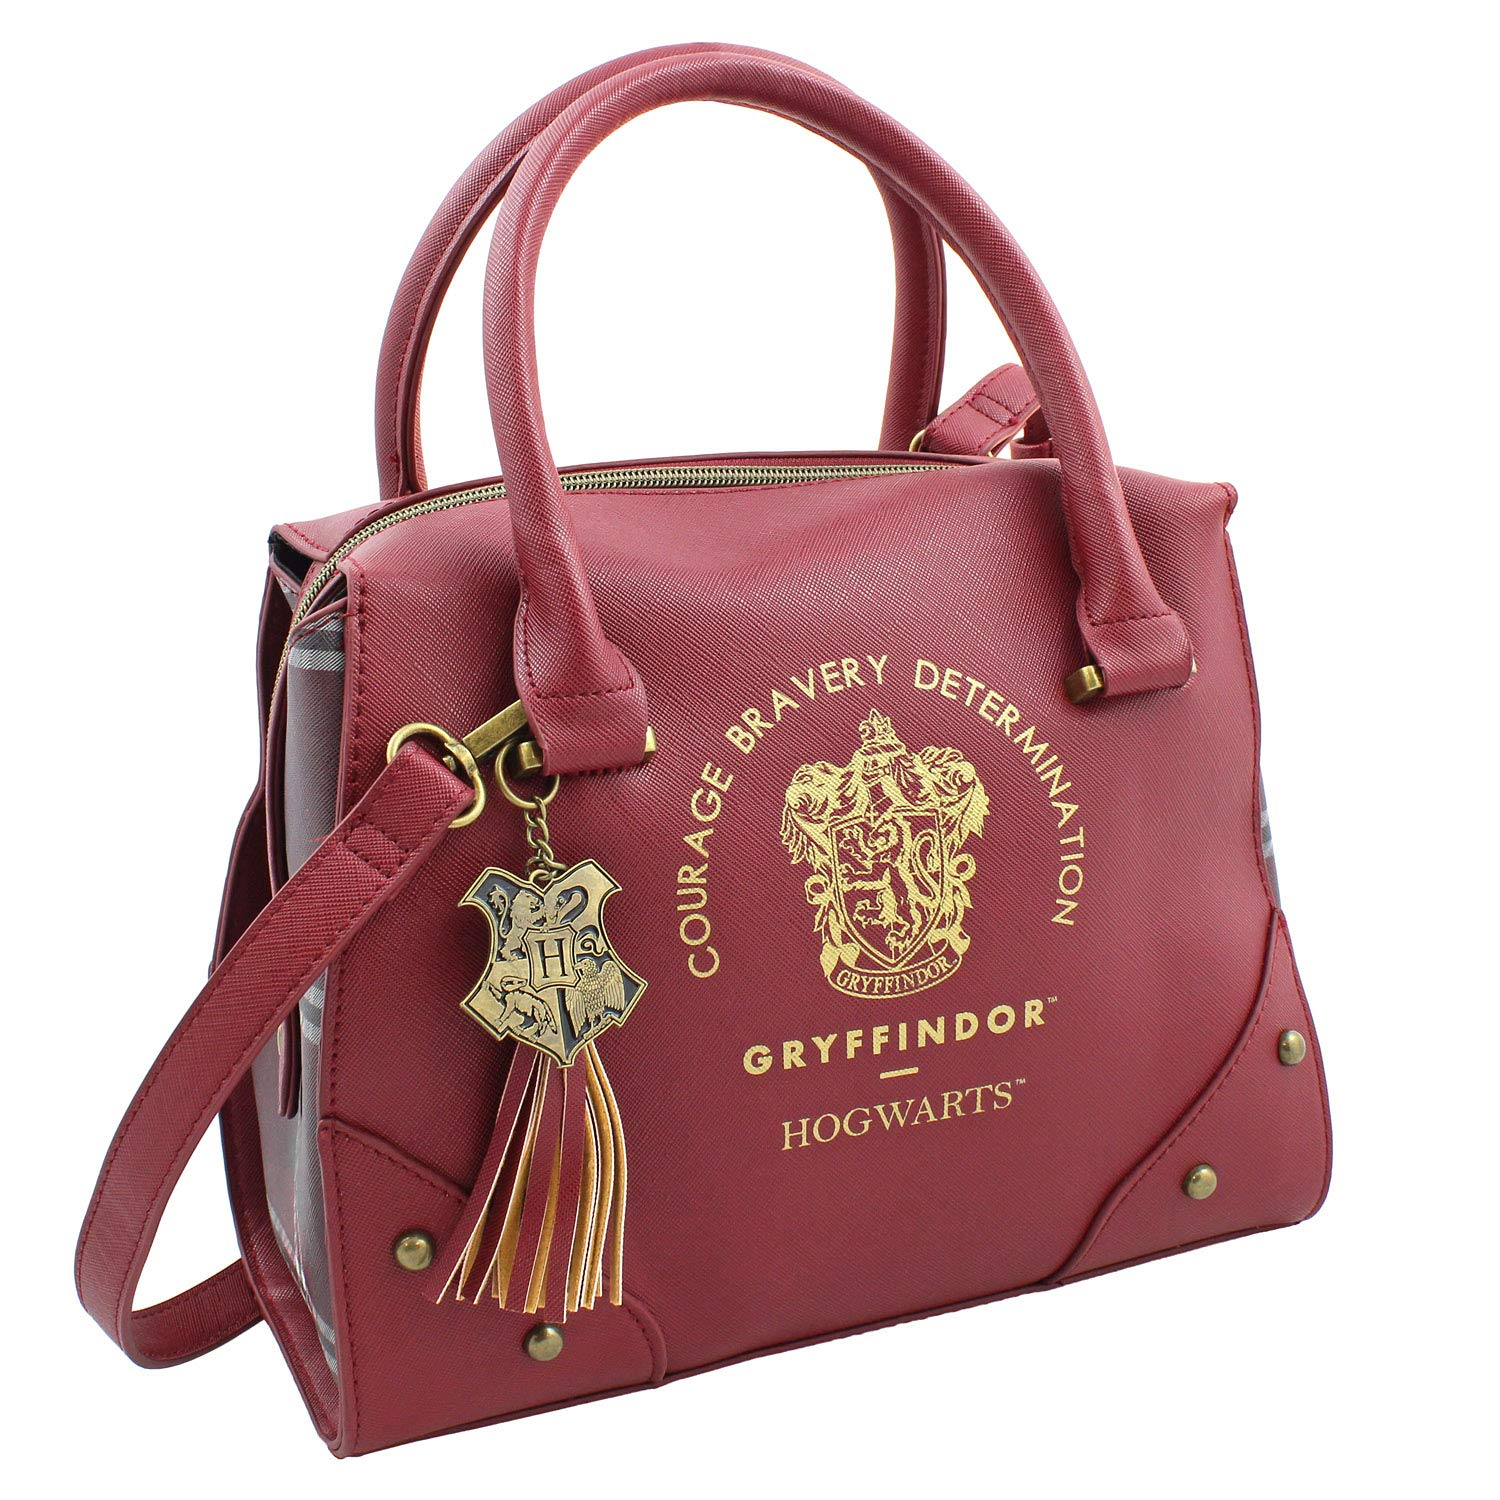 Harry Potter Purse Designer Handbag Hogwarts Houses Womens Top Handle Shoulder Satchel Bag Gryffindor - wiihuu